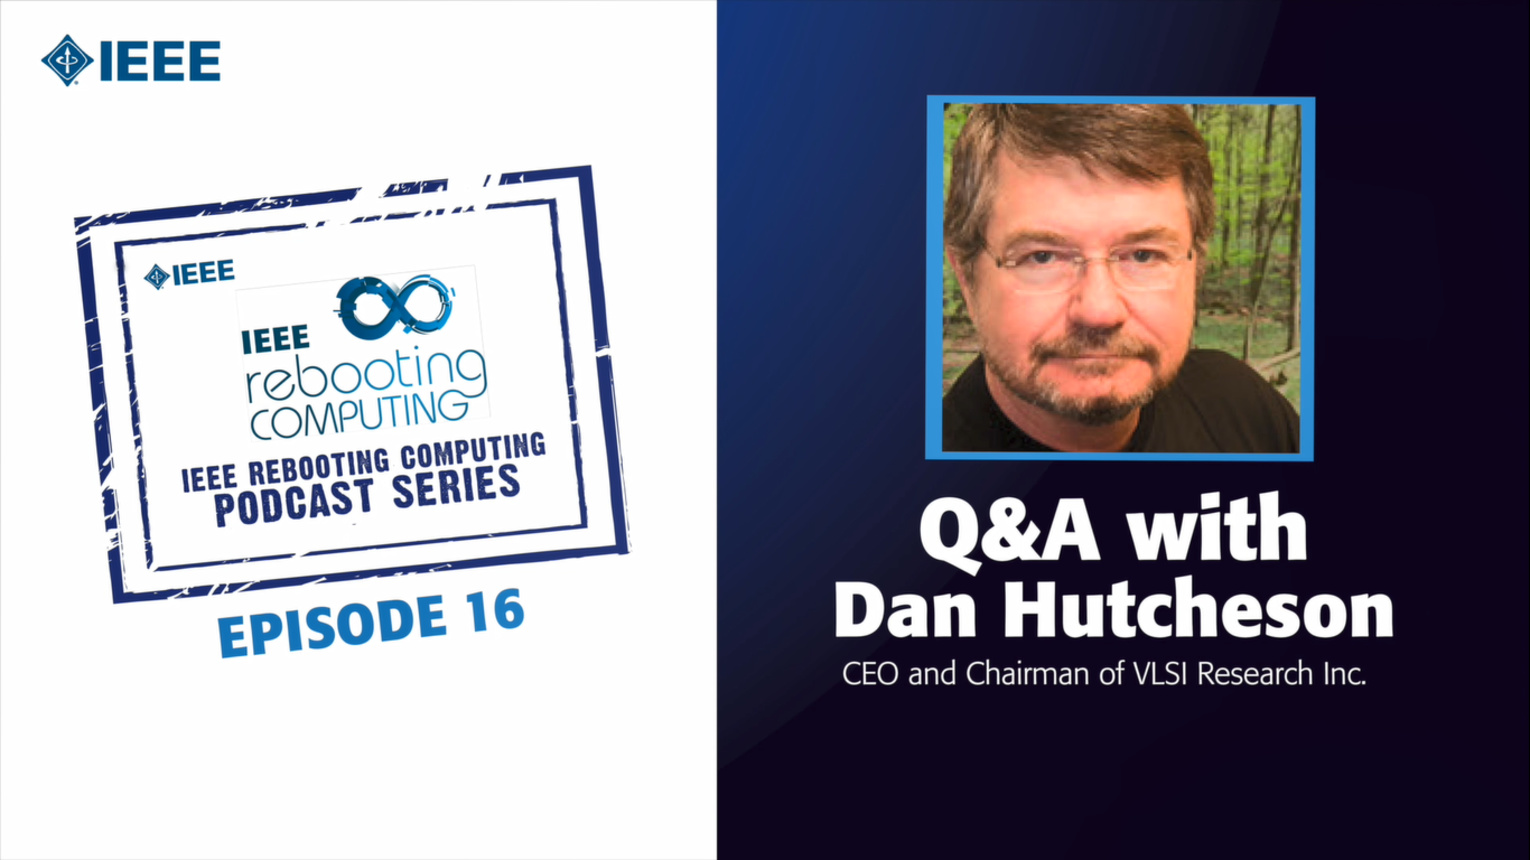 Q&A with Dan Hutcheson: IEEE Rebooting Computing Podcast, Episode 16